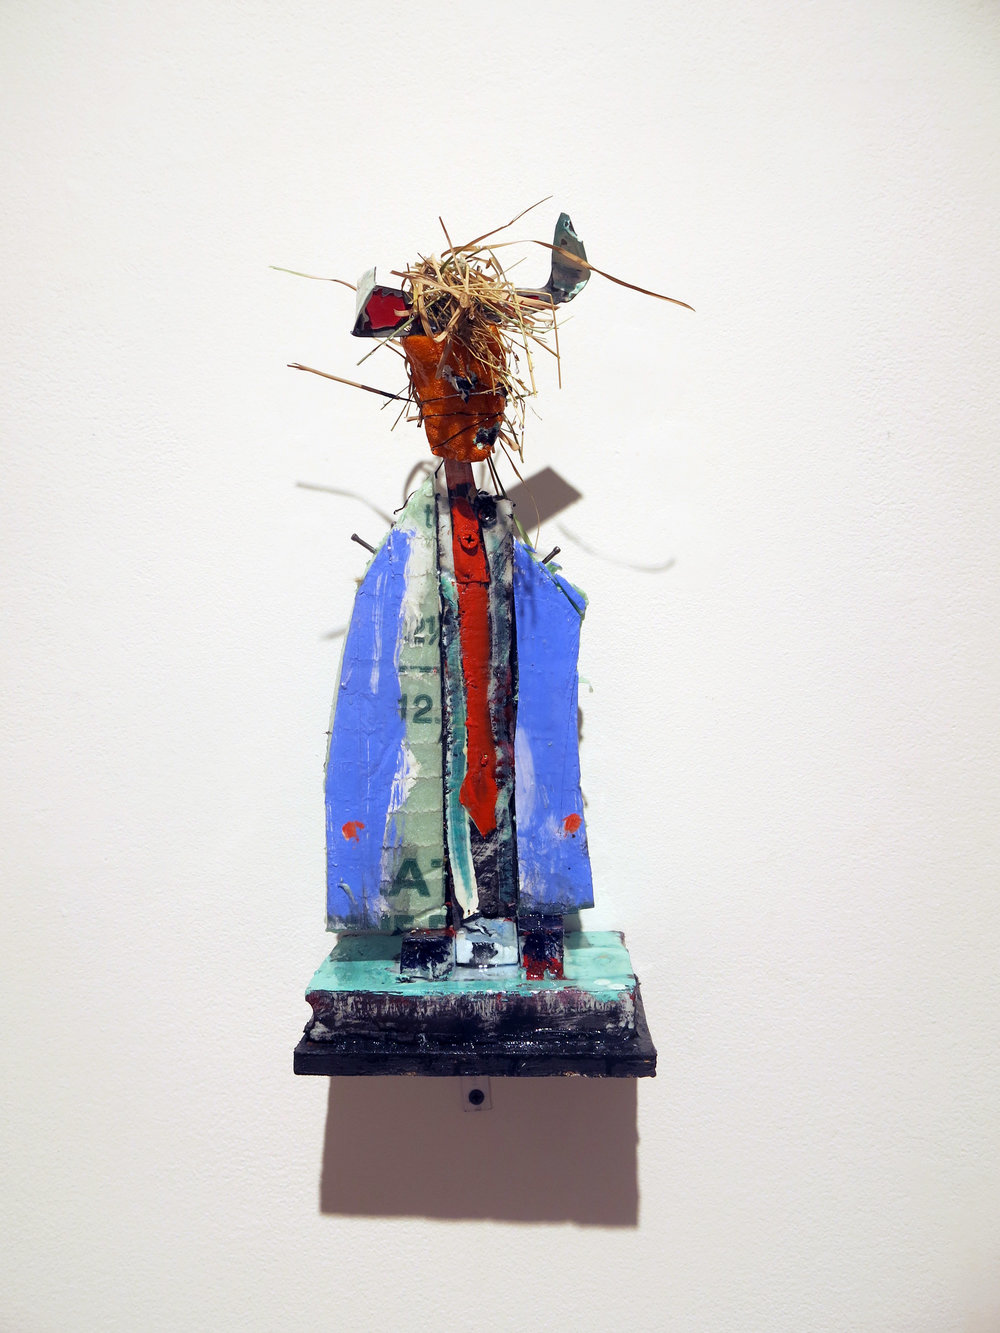 Matt Blackwell,  Effigy,  2017, styro metal, wood, paint, straw, 12h x 6w x 4d in.